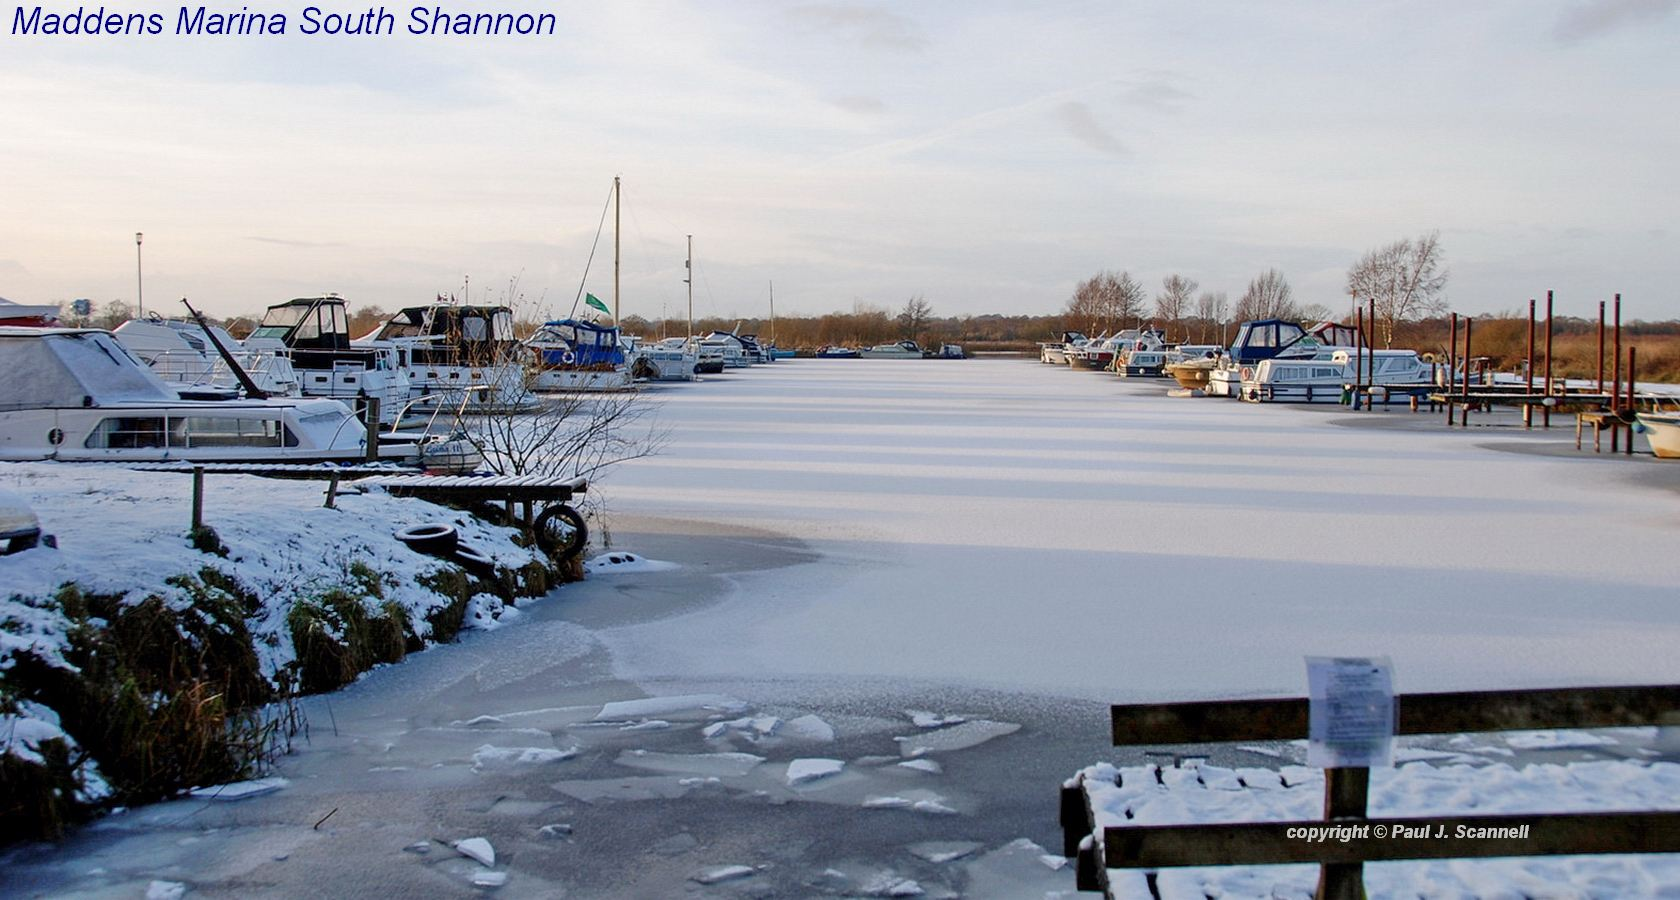 Maddens Marina Ice and Snow; © Paul Scannell